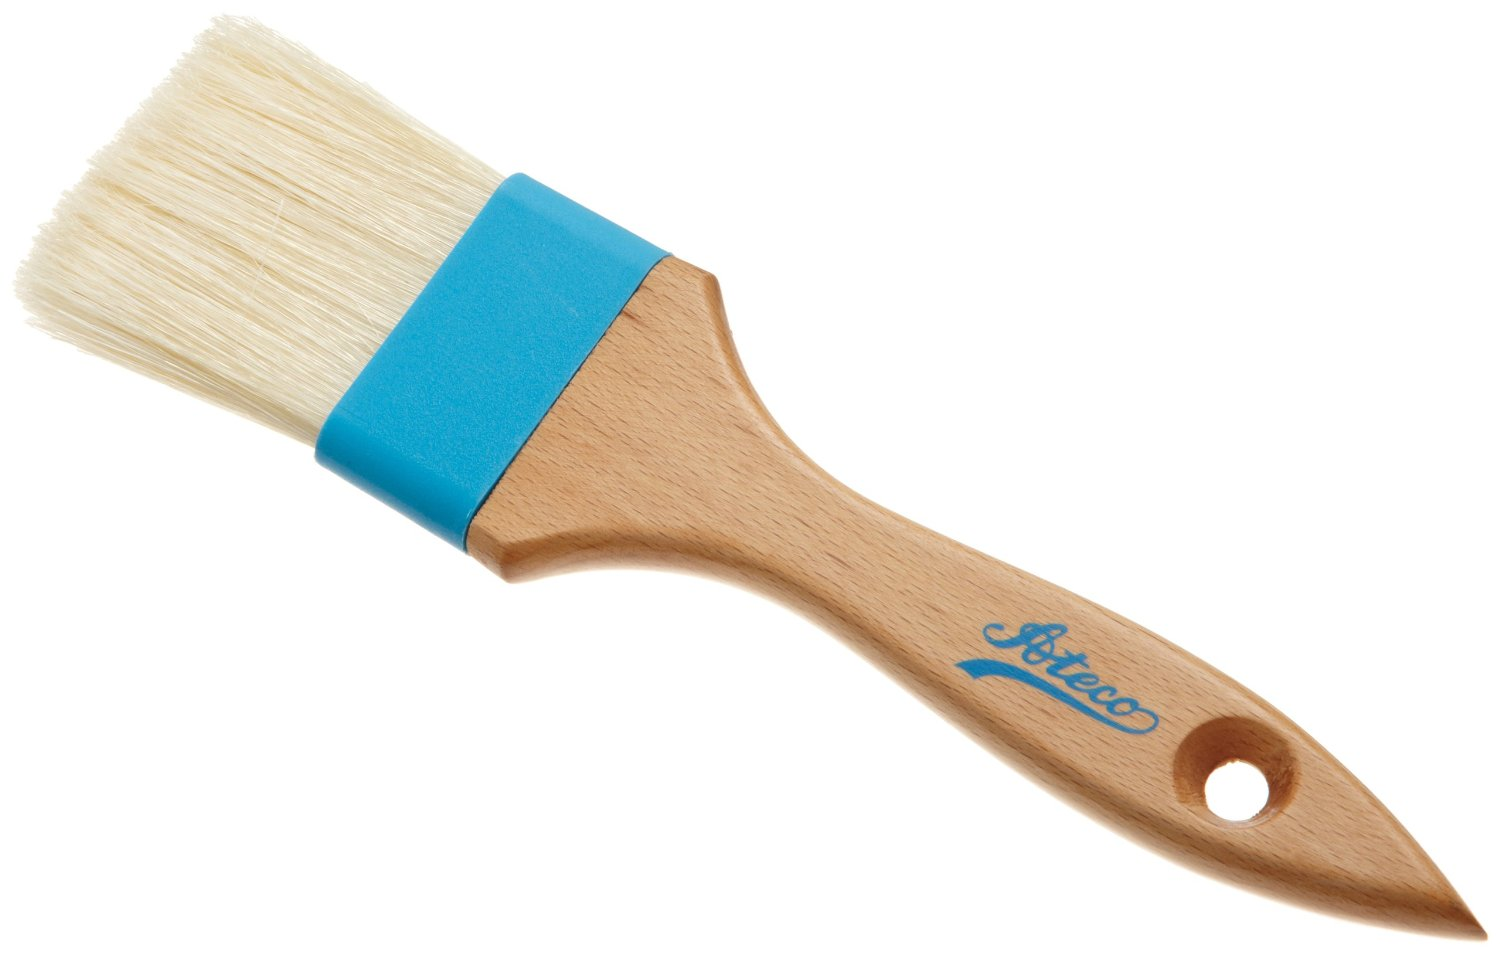 Pastry Brush Details About Ateco Flat Pastry Brush 2 Inch Wide Basting Kitchen Baking Tool Natural Wood